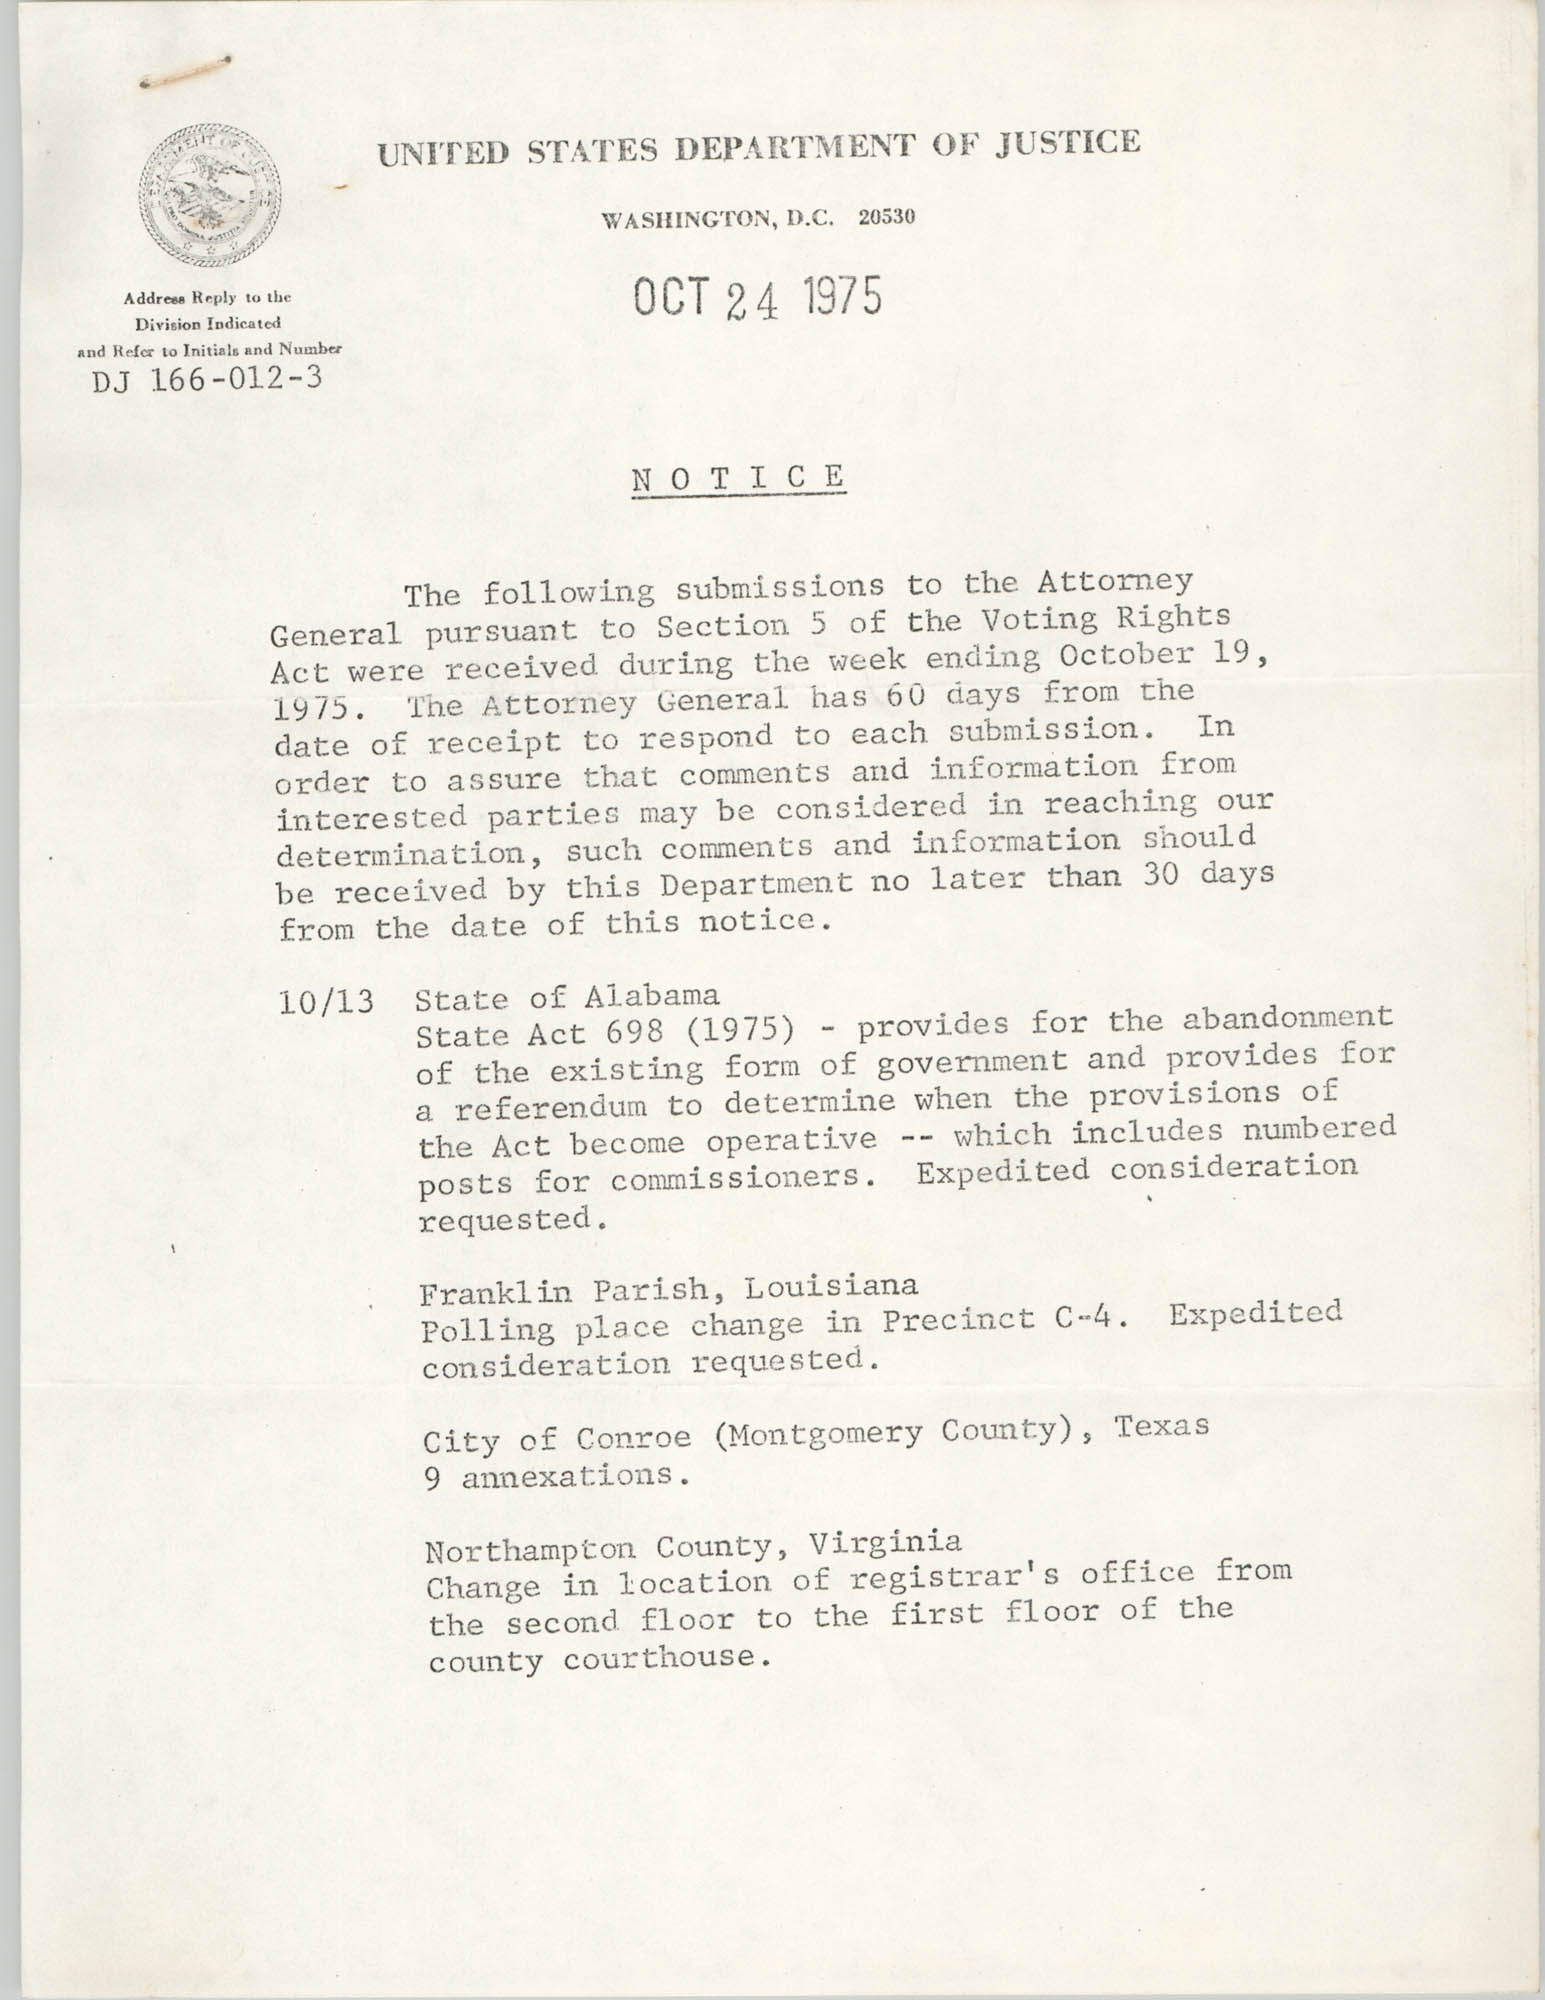 United States Department of Justice Notice, October 24, 1975